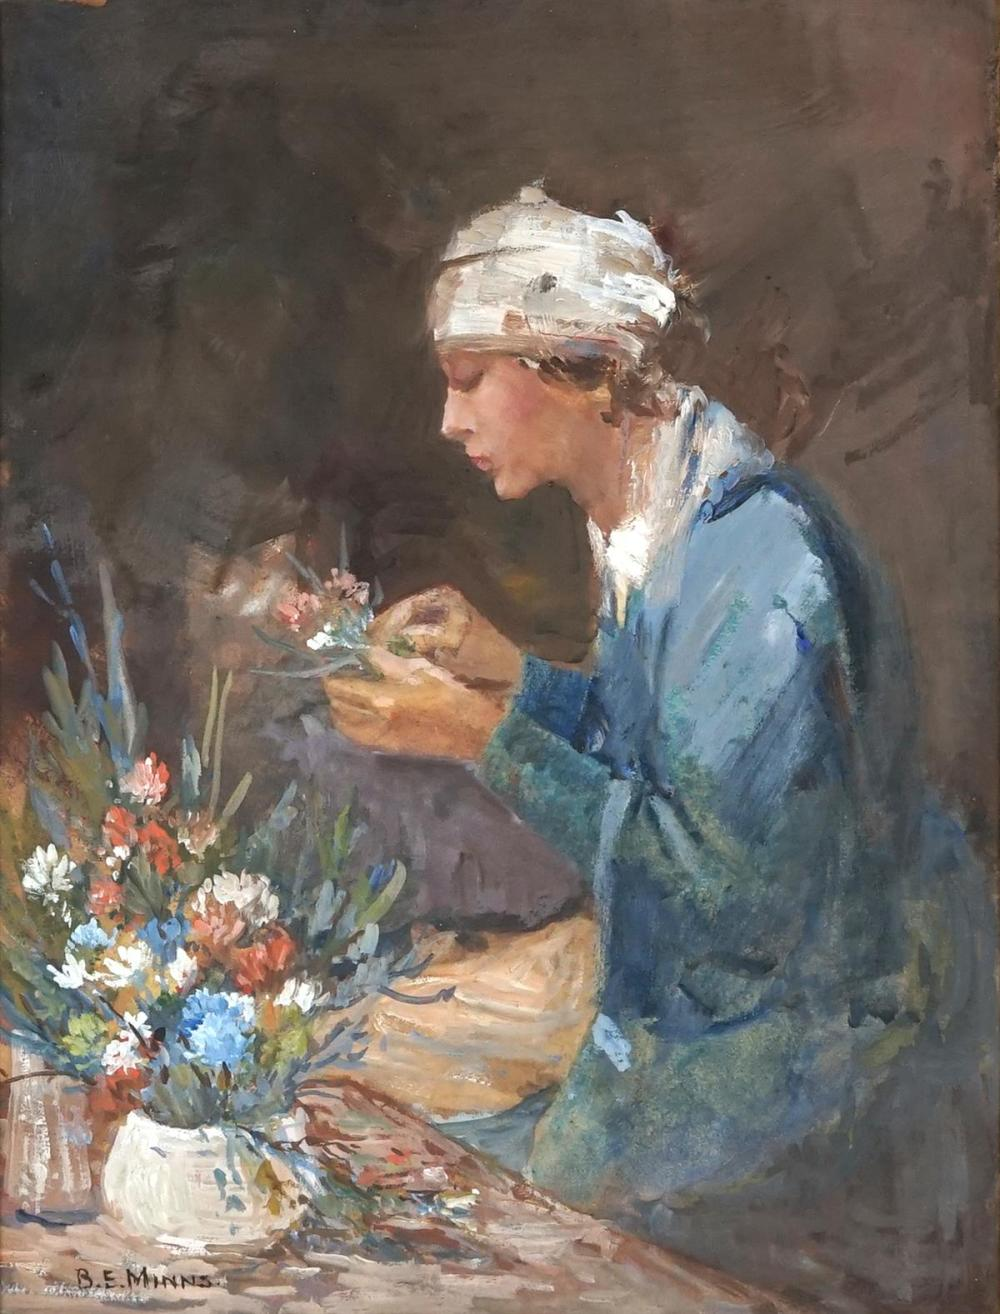 Benjamin Minns (1864 - 1937) - Arranging Flowers 35 x 28cm